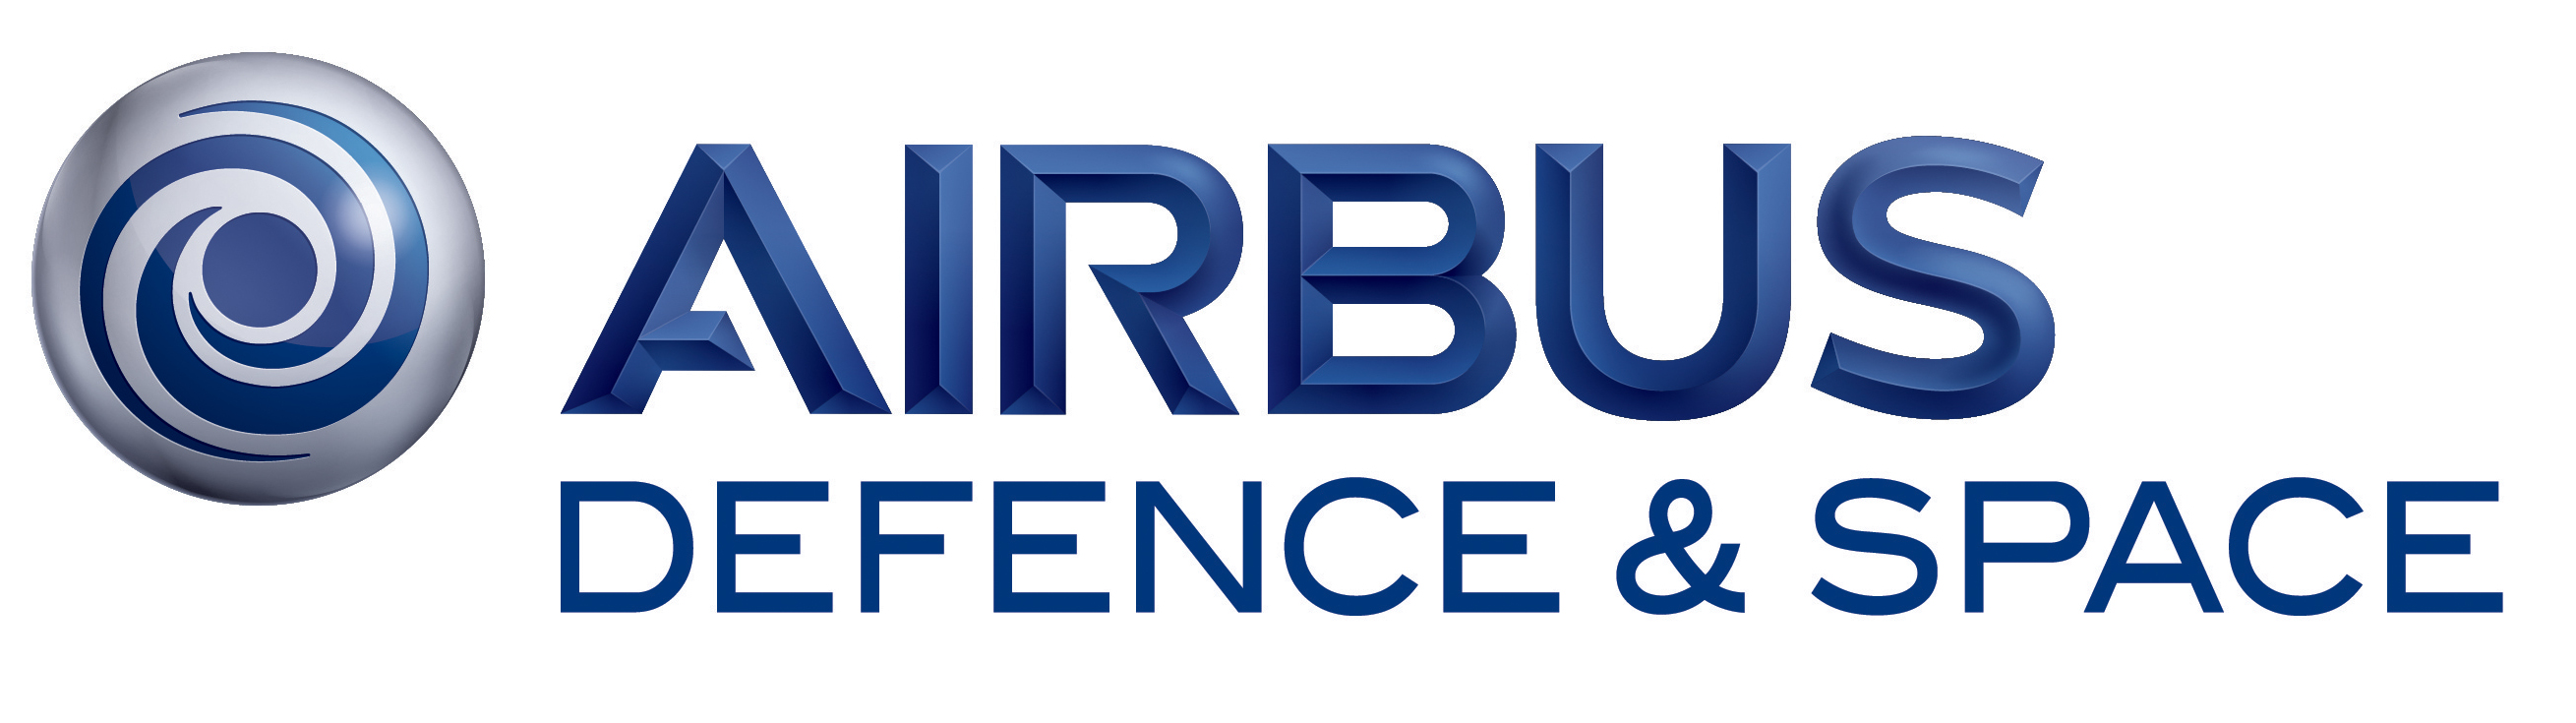 Airbus defence space logo